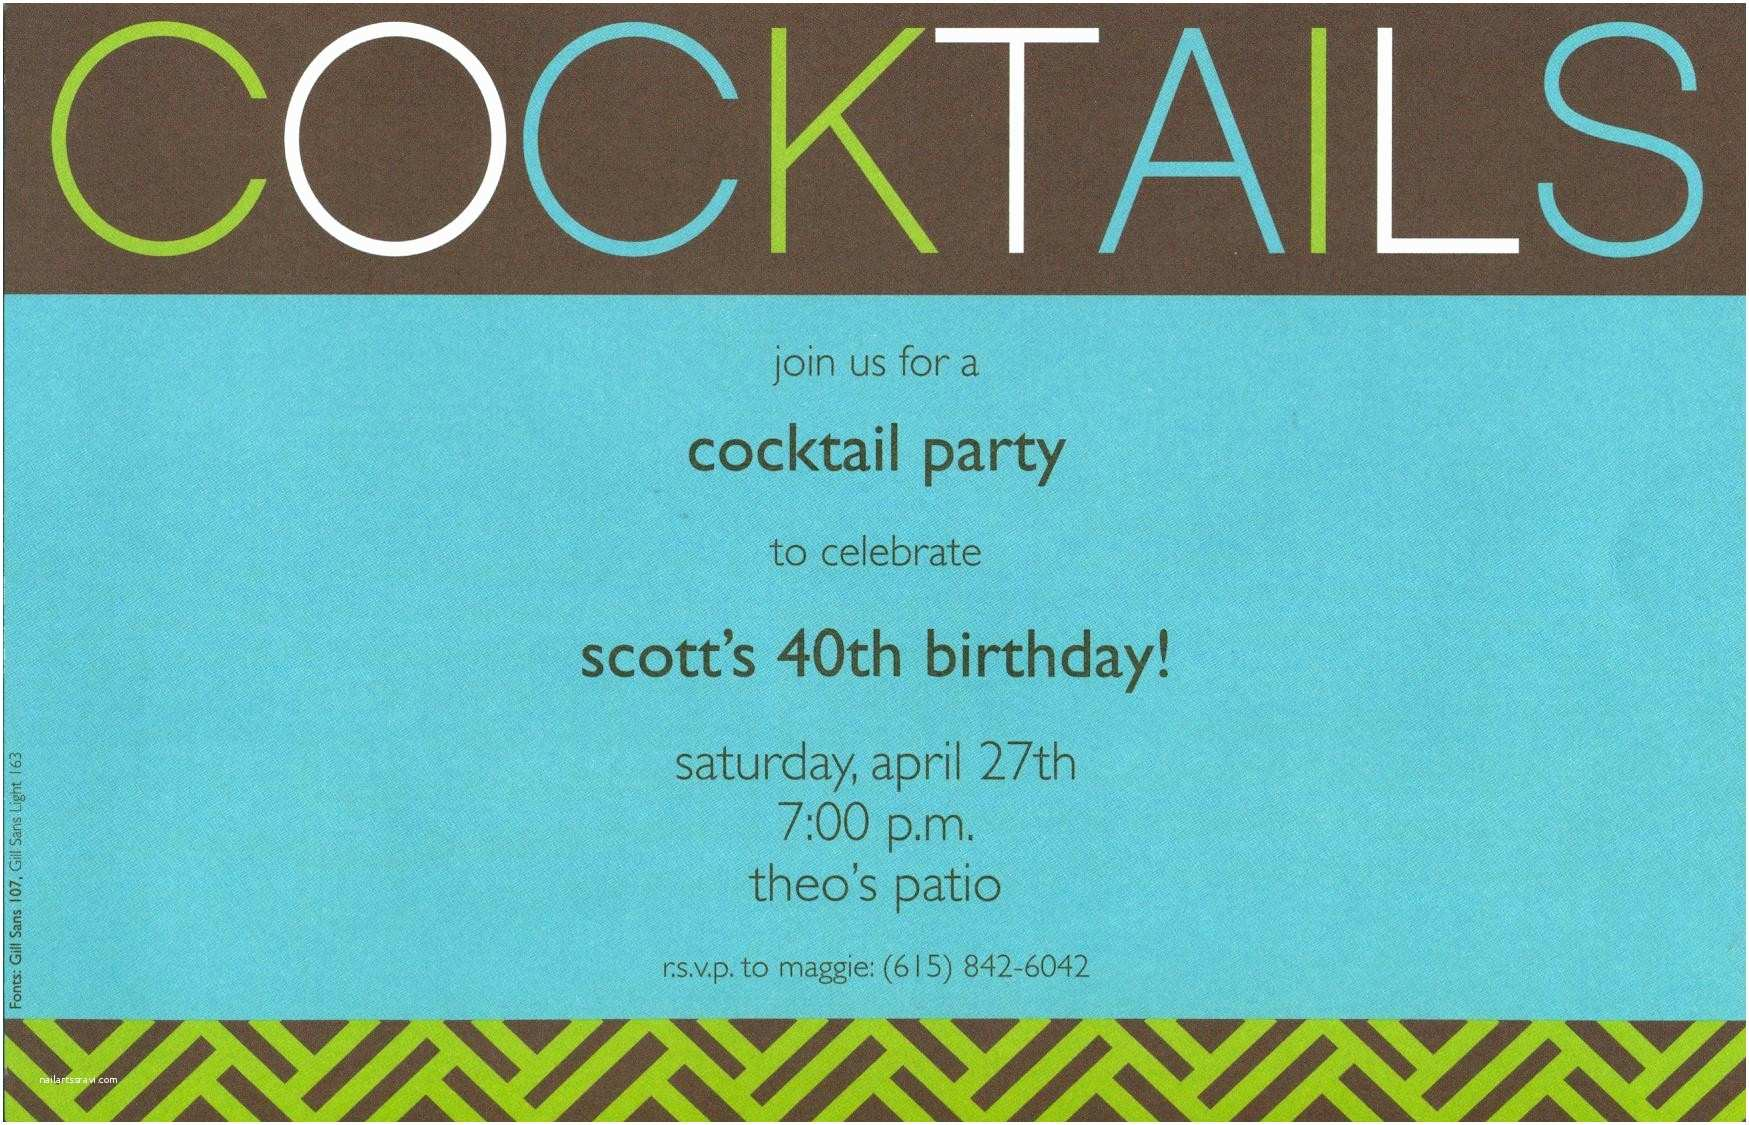 Cocktail Party Invitations Tips for Choosing Cocktail Party Invitations Templates